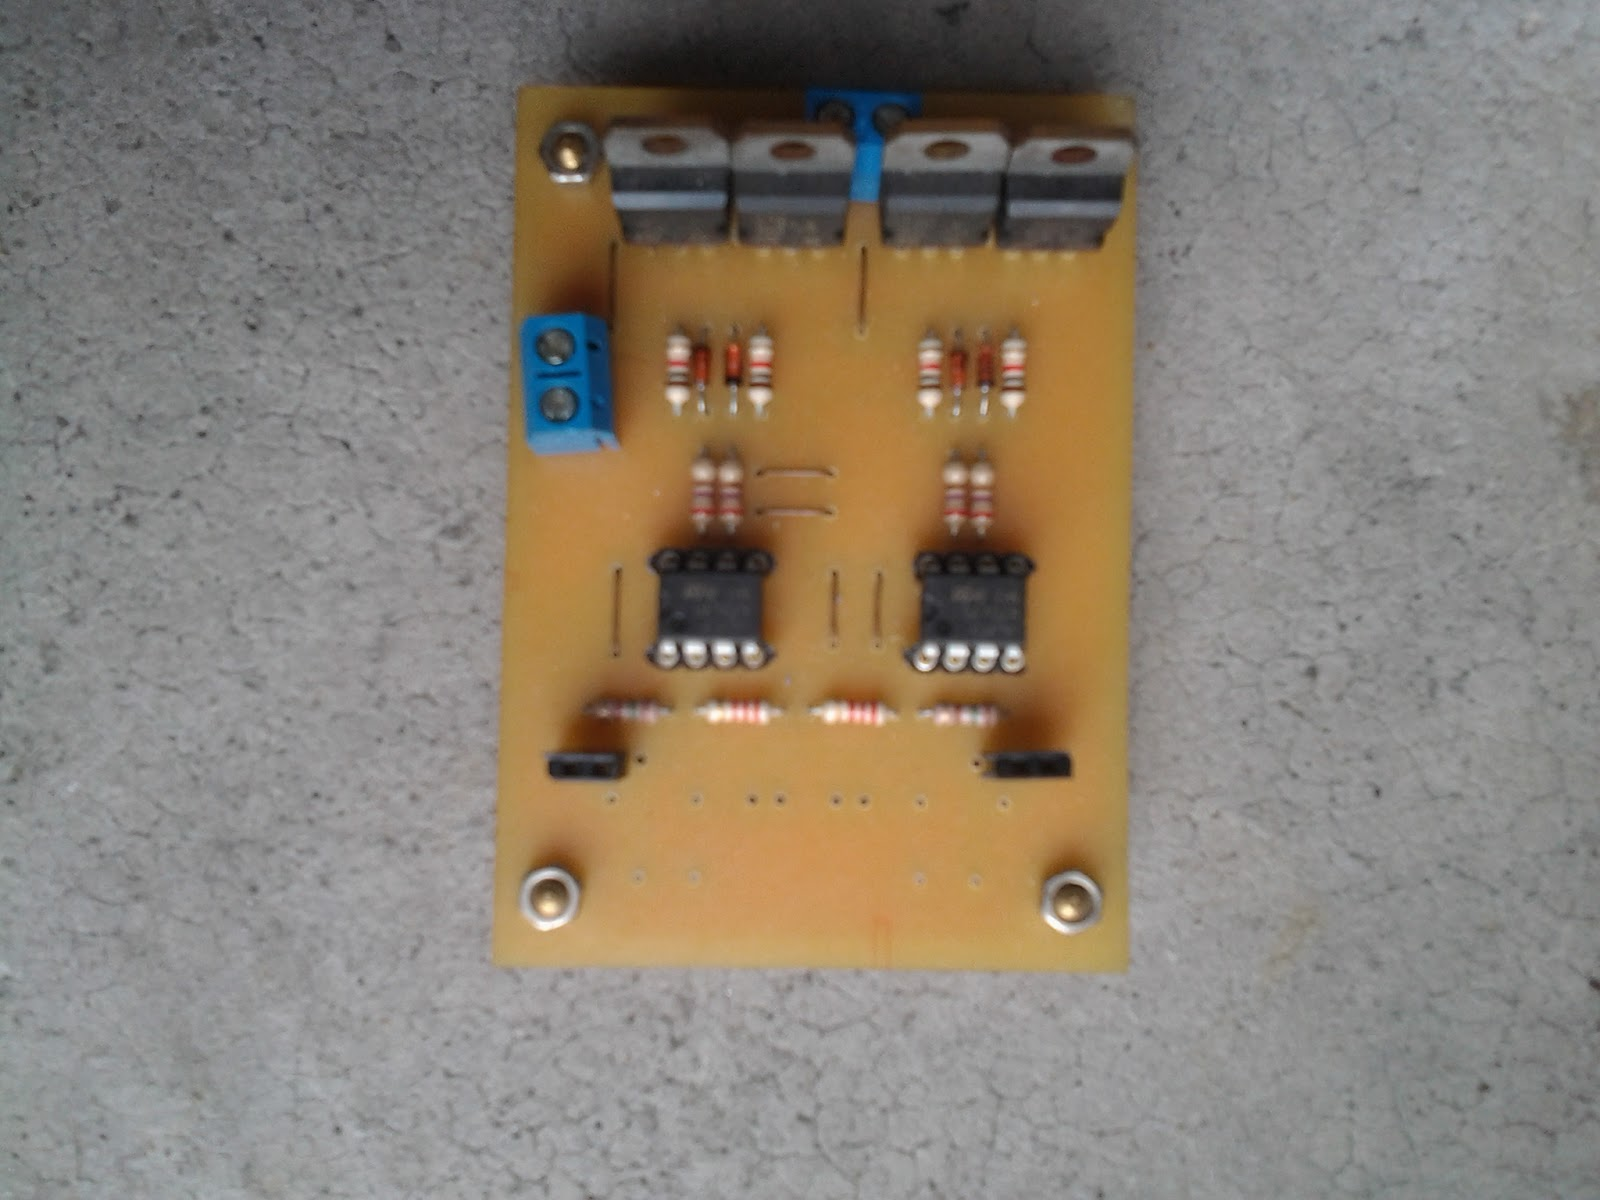 Efficient Switching Controller Single Axis Solar Tracking System Transistors Light Sensor Switch Using Ldr Electrical Engineering Analysis To Calibrate This Circuit We Need Connect Variable Resistor See Whether The Motor Is Rotating Or Not Since That Our A